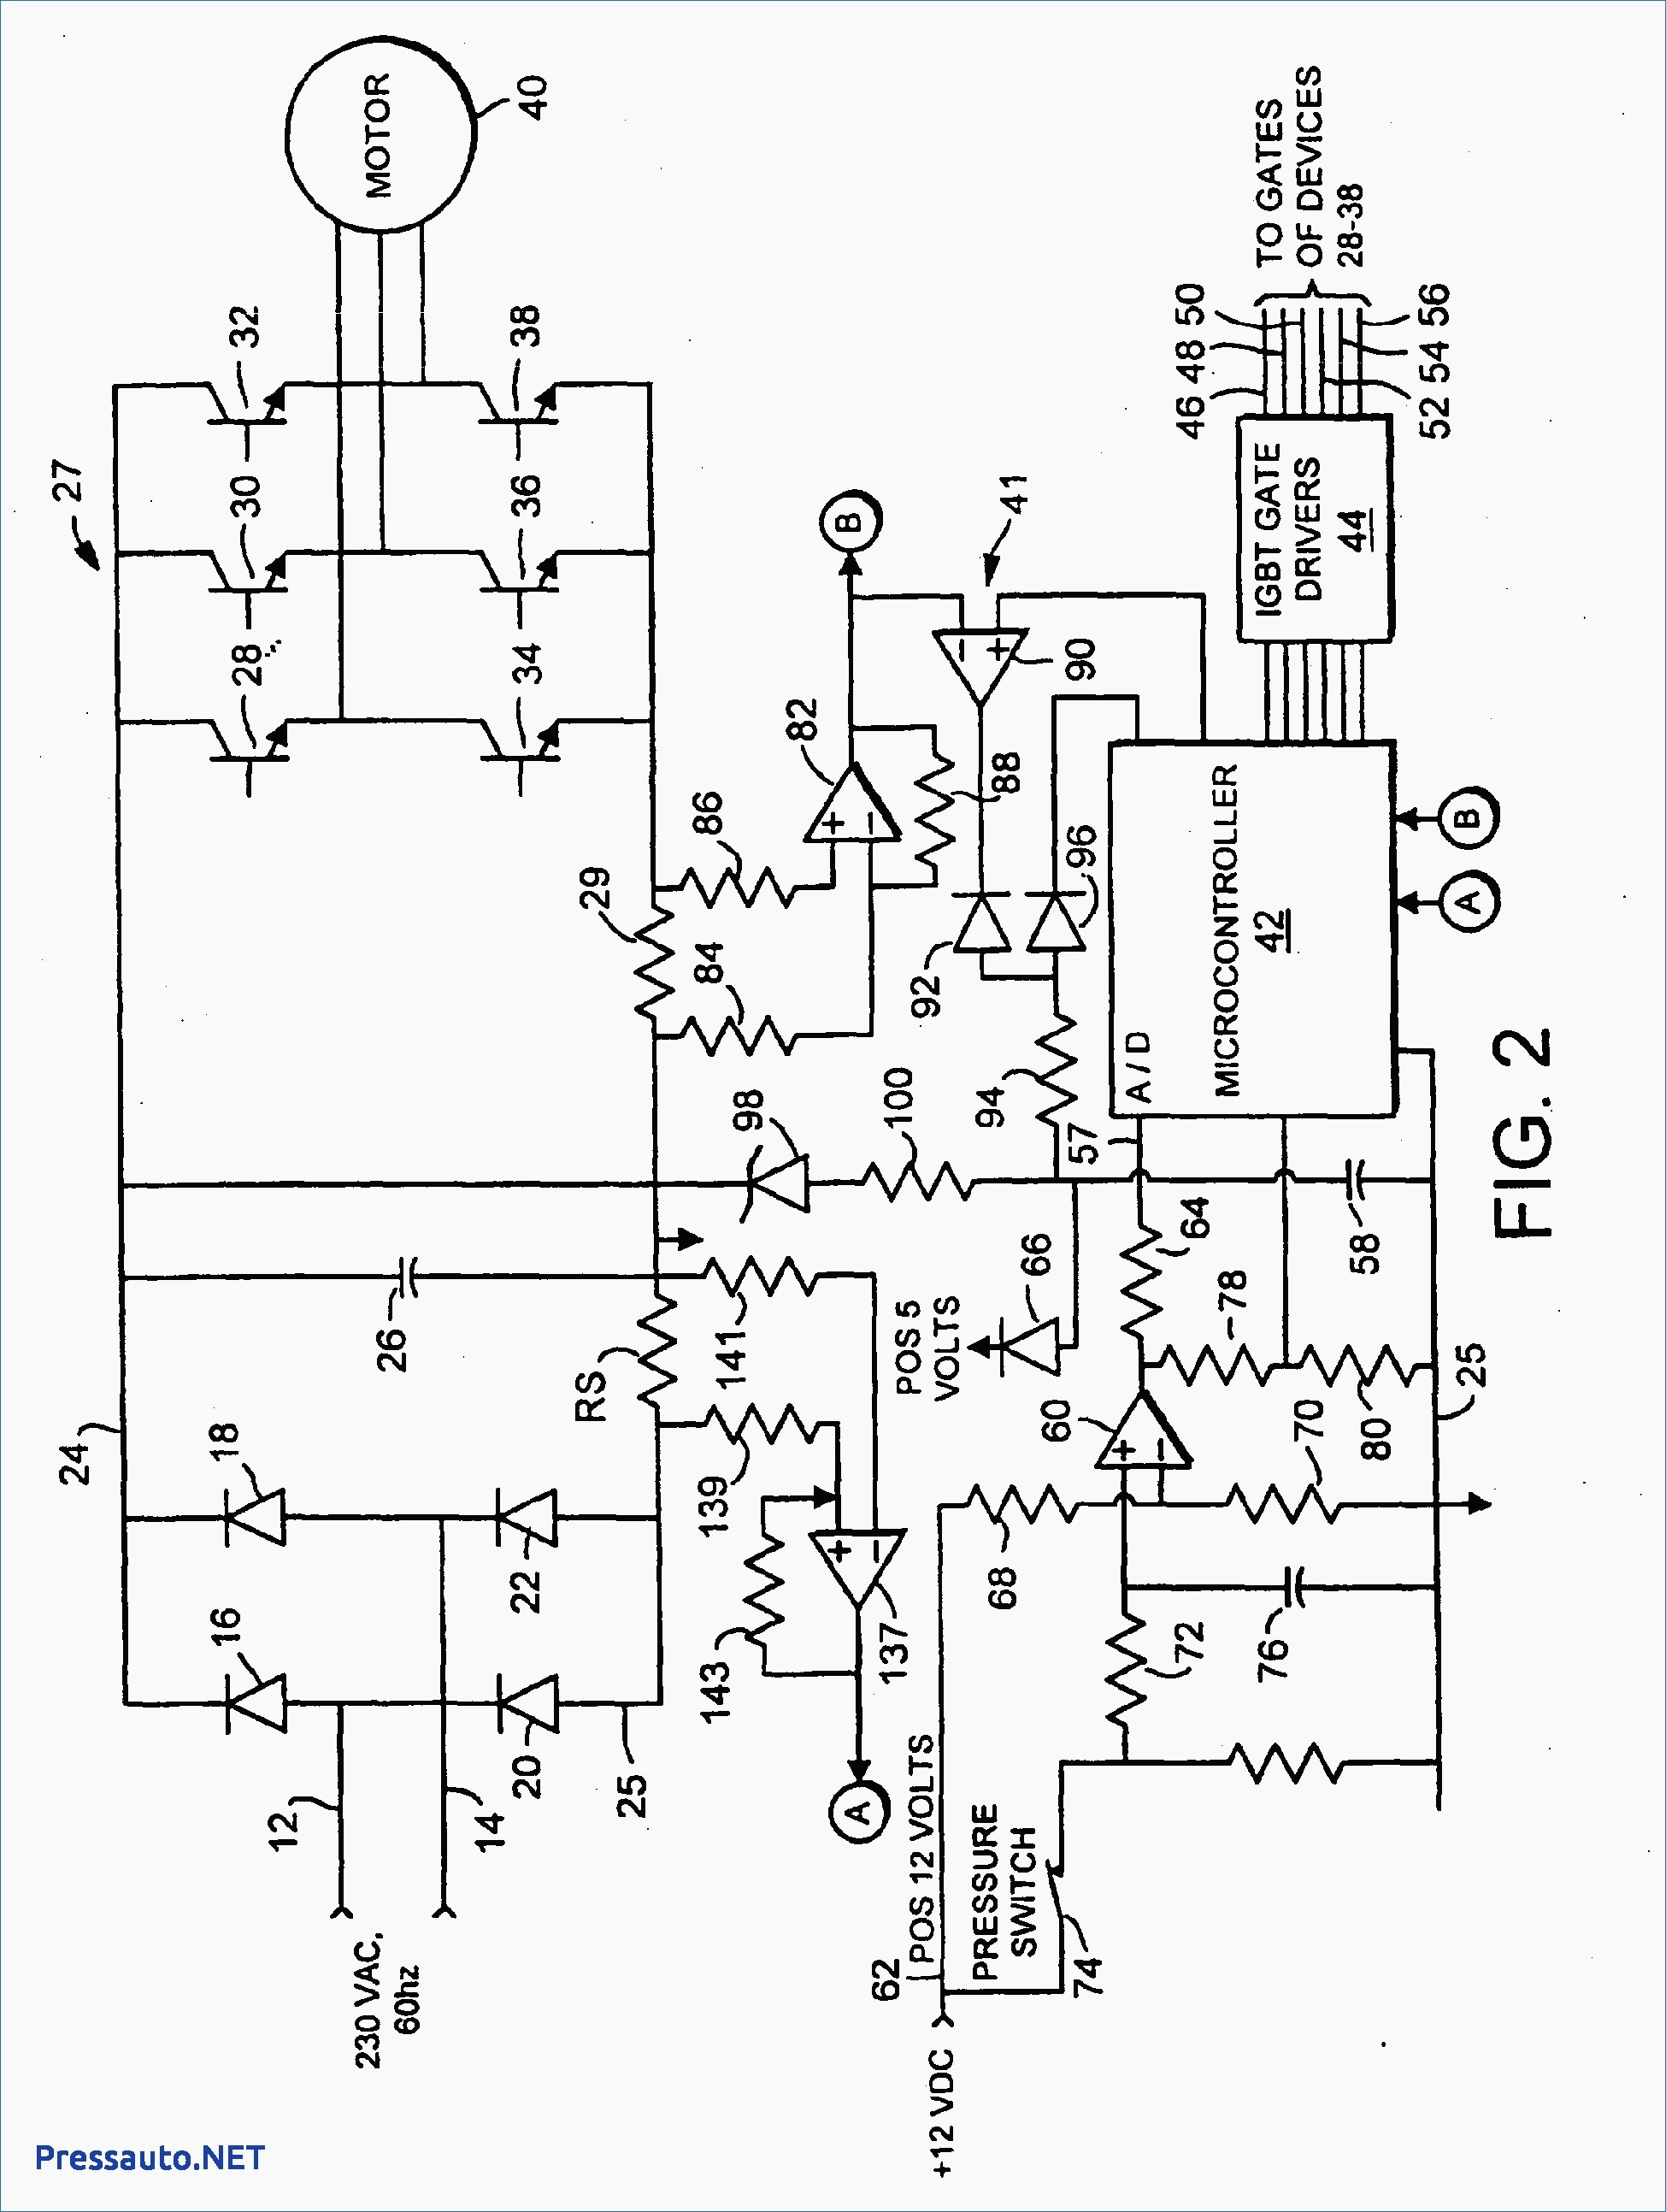 sump pump control panel wiring diagram